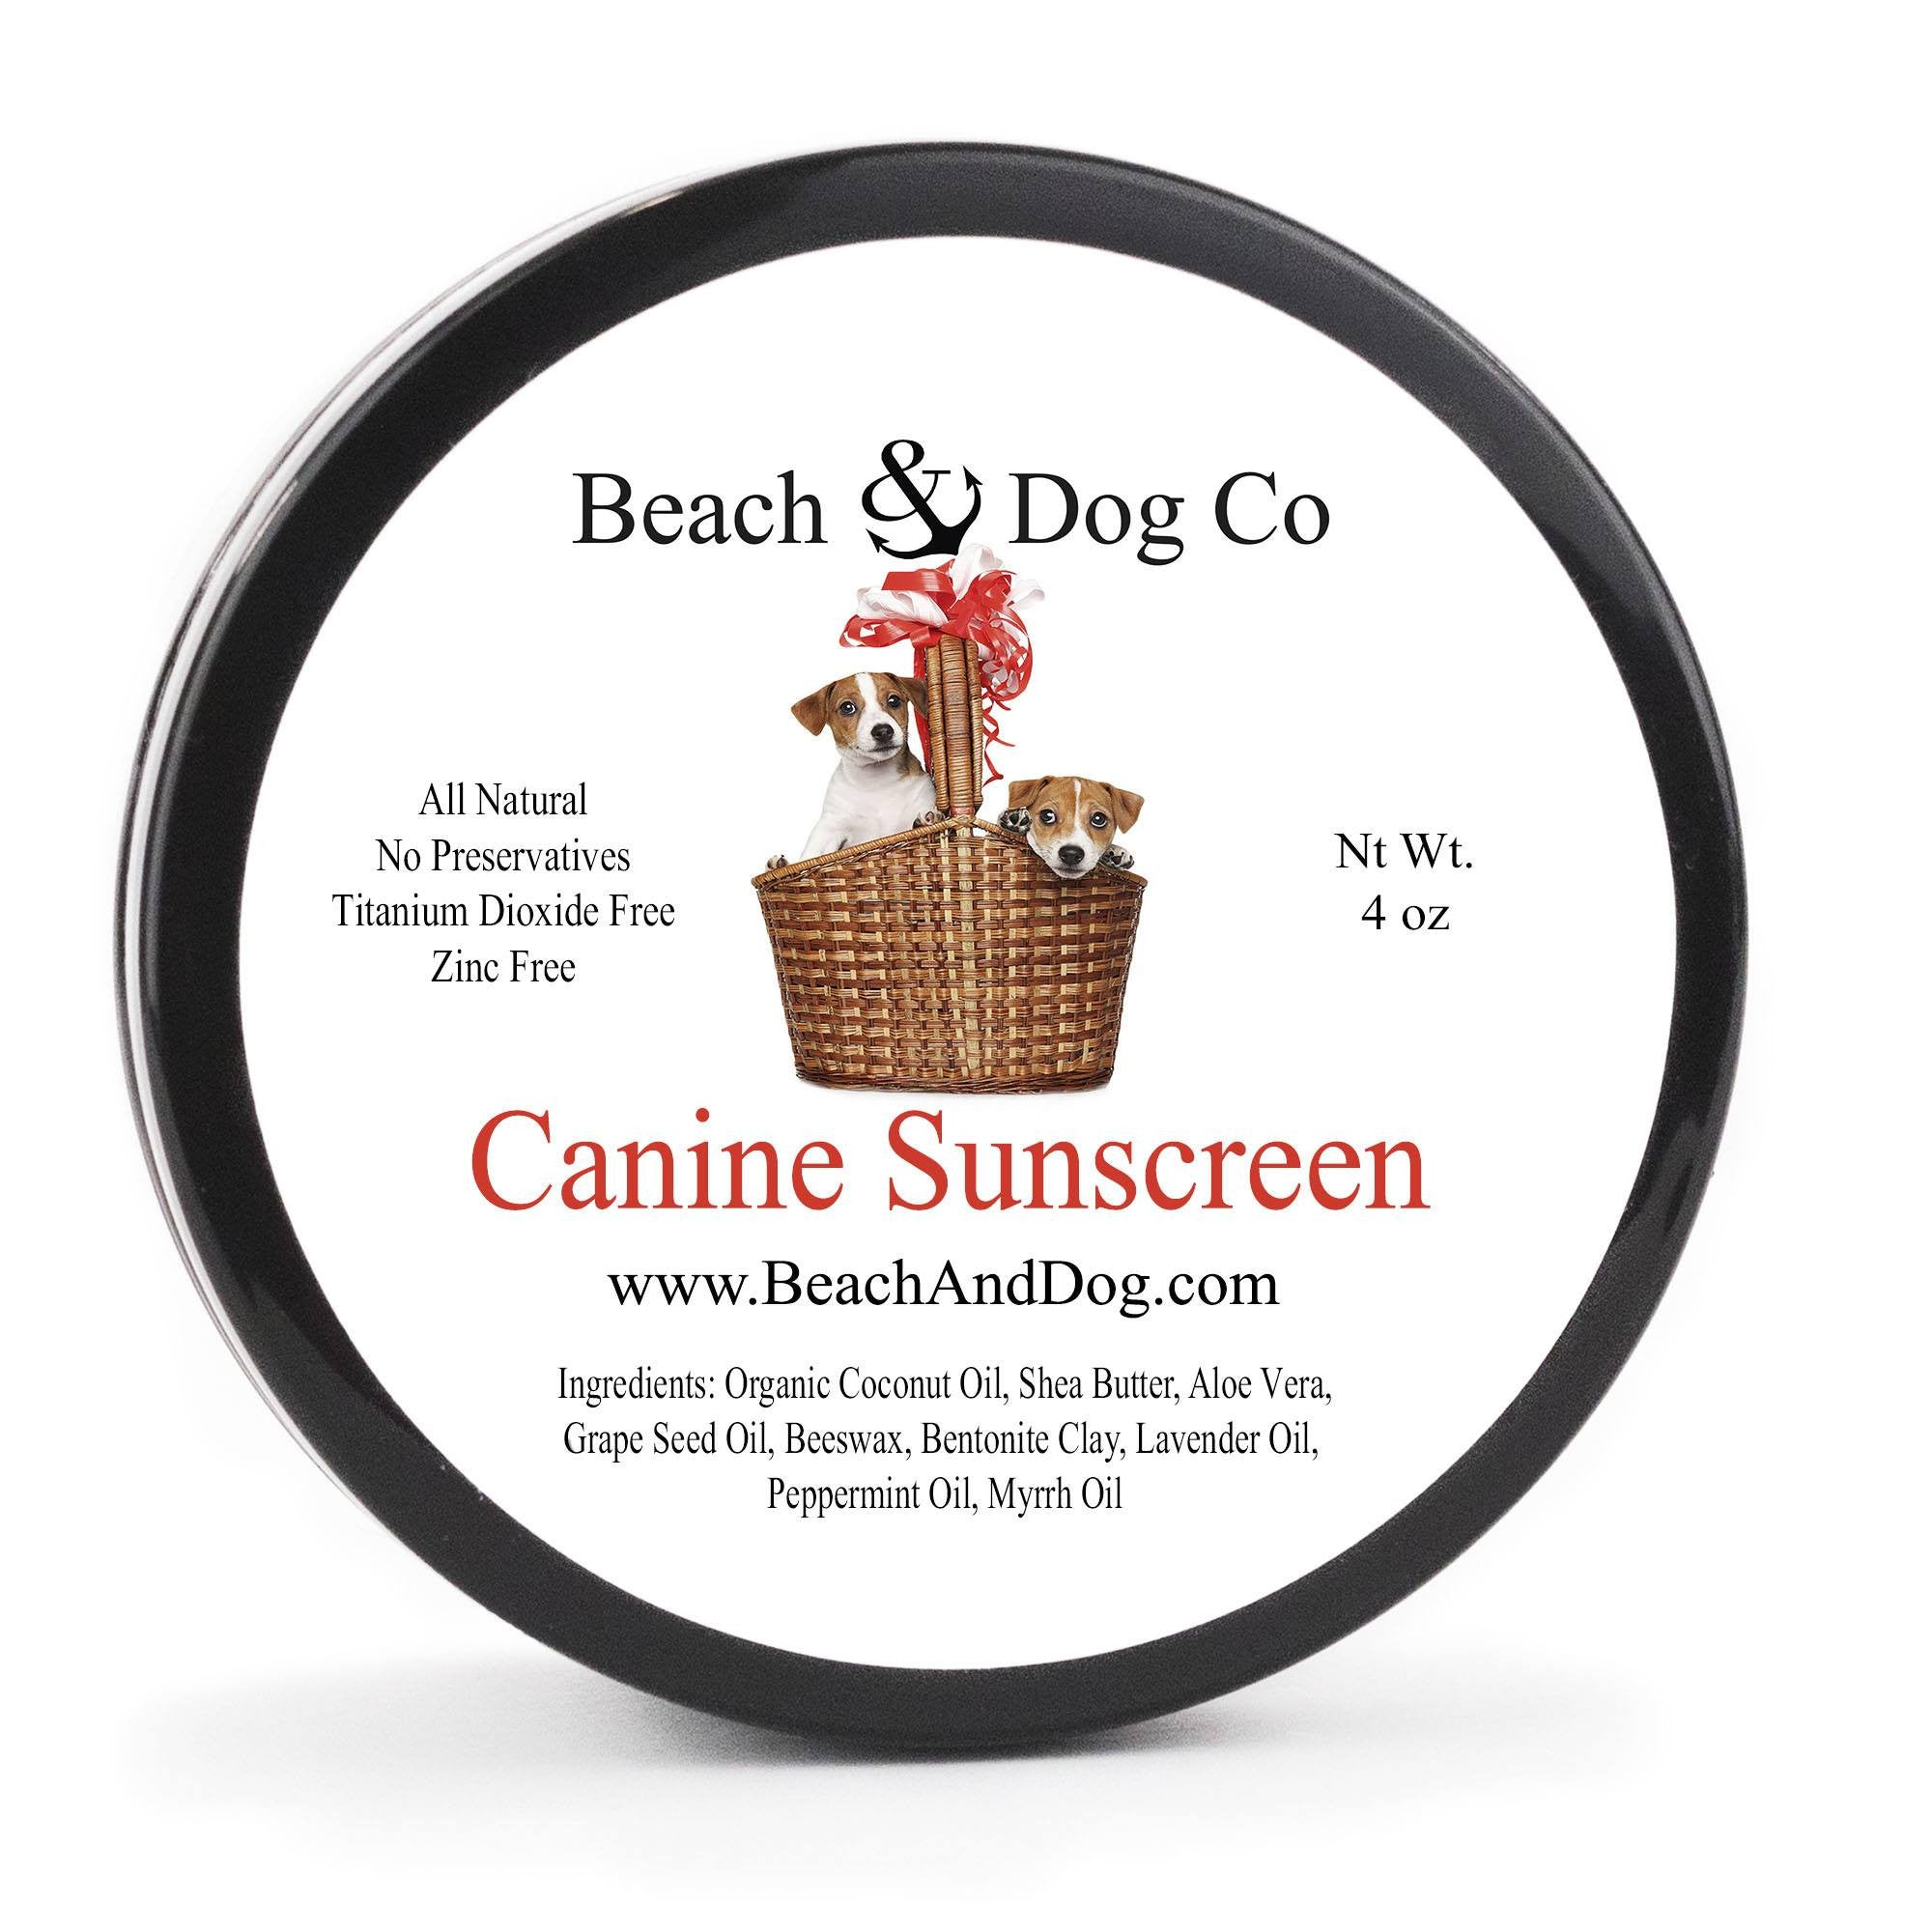 Canine Sunscreen - 4 oz - Zinc and Titanium Dioxide Free - All Natural and Organic Formula - Beach & Dog Co.